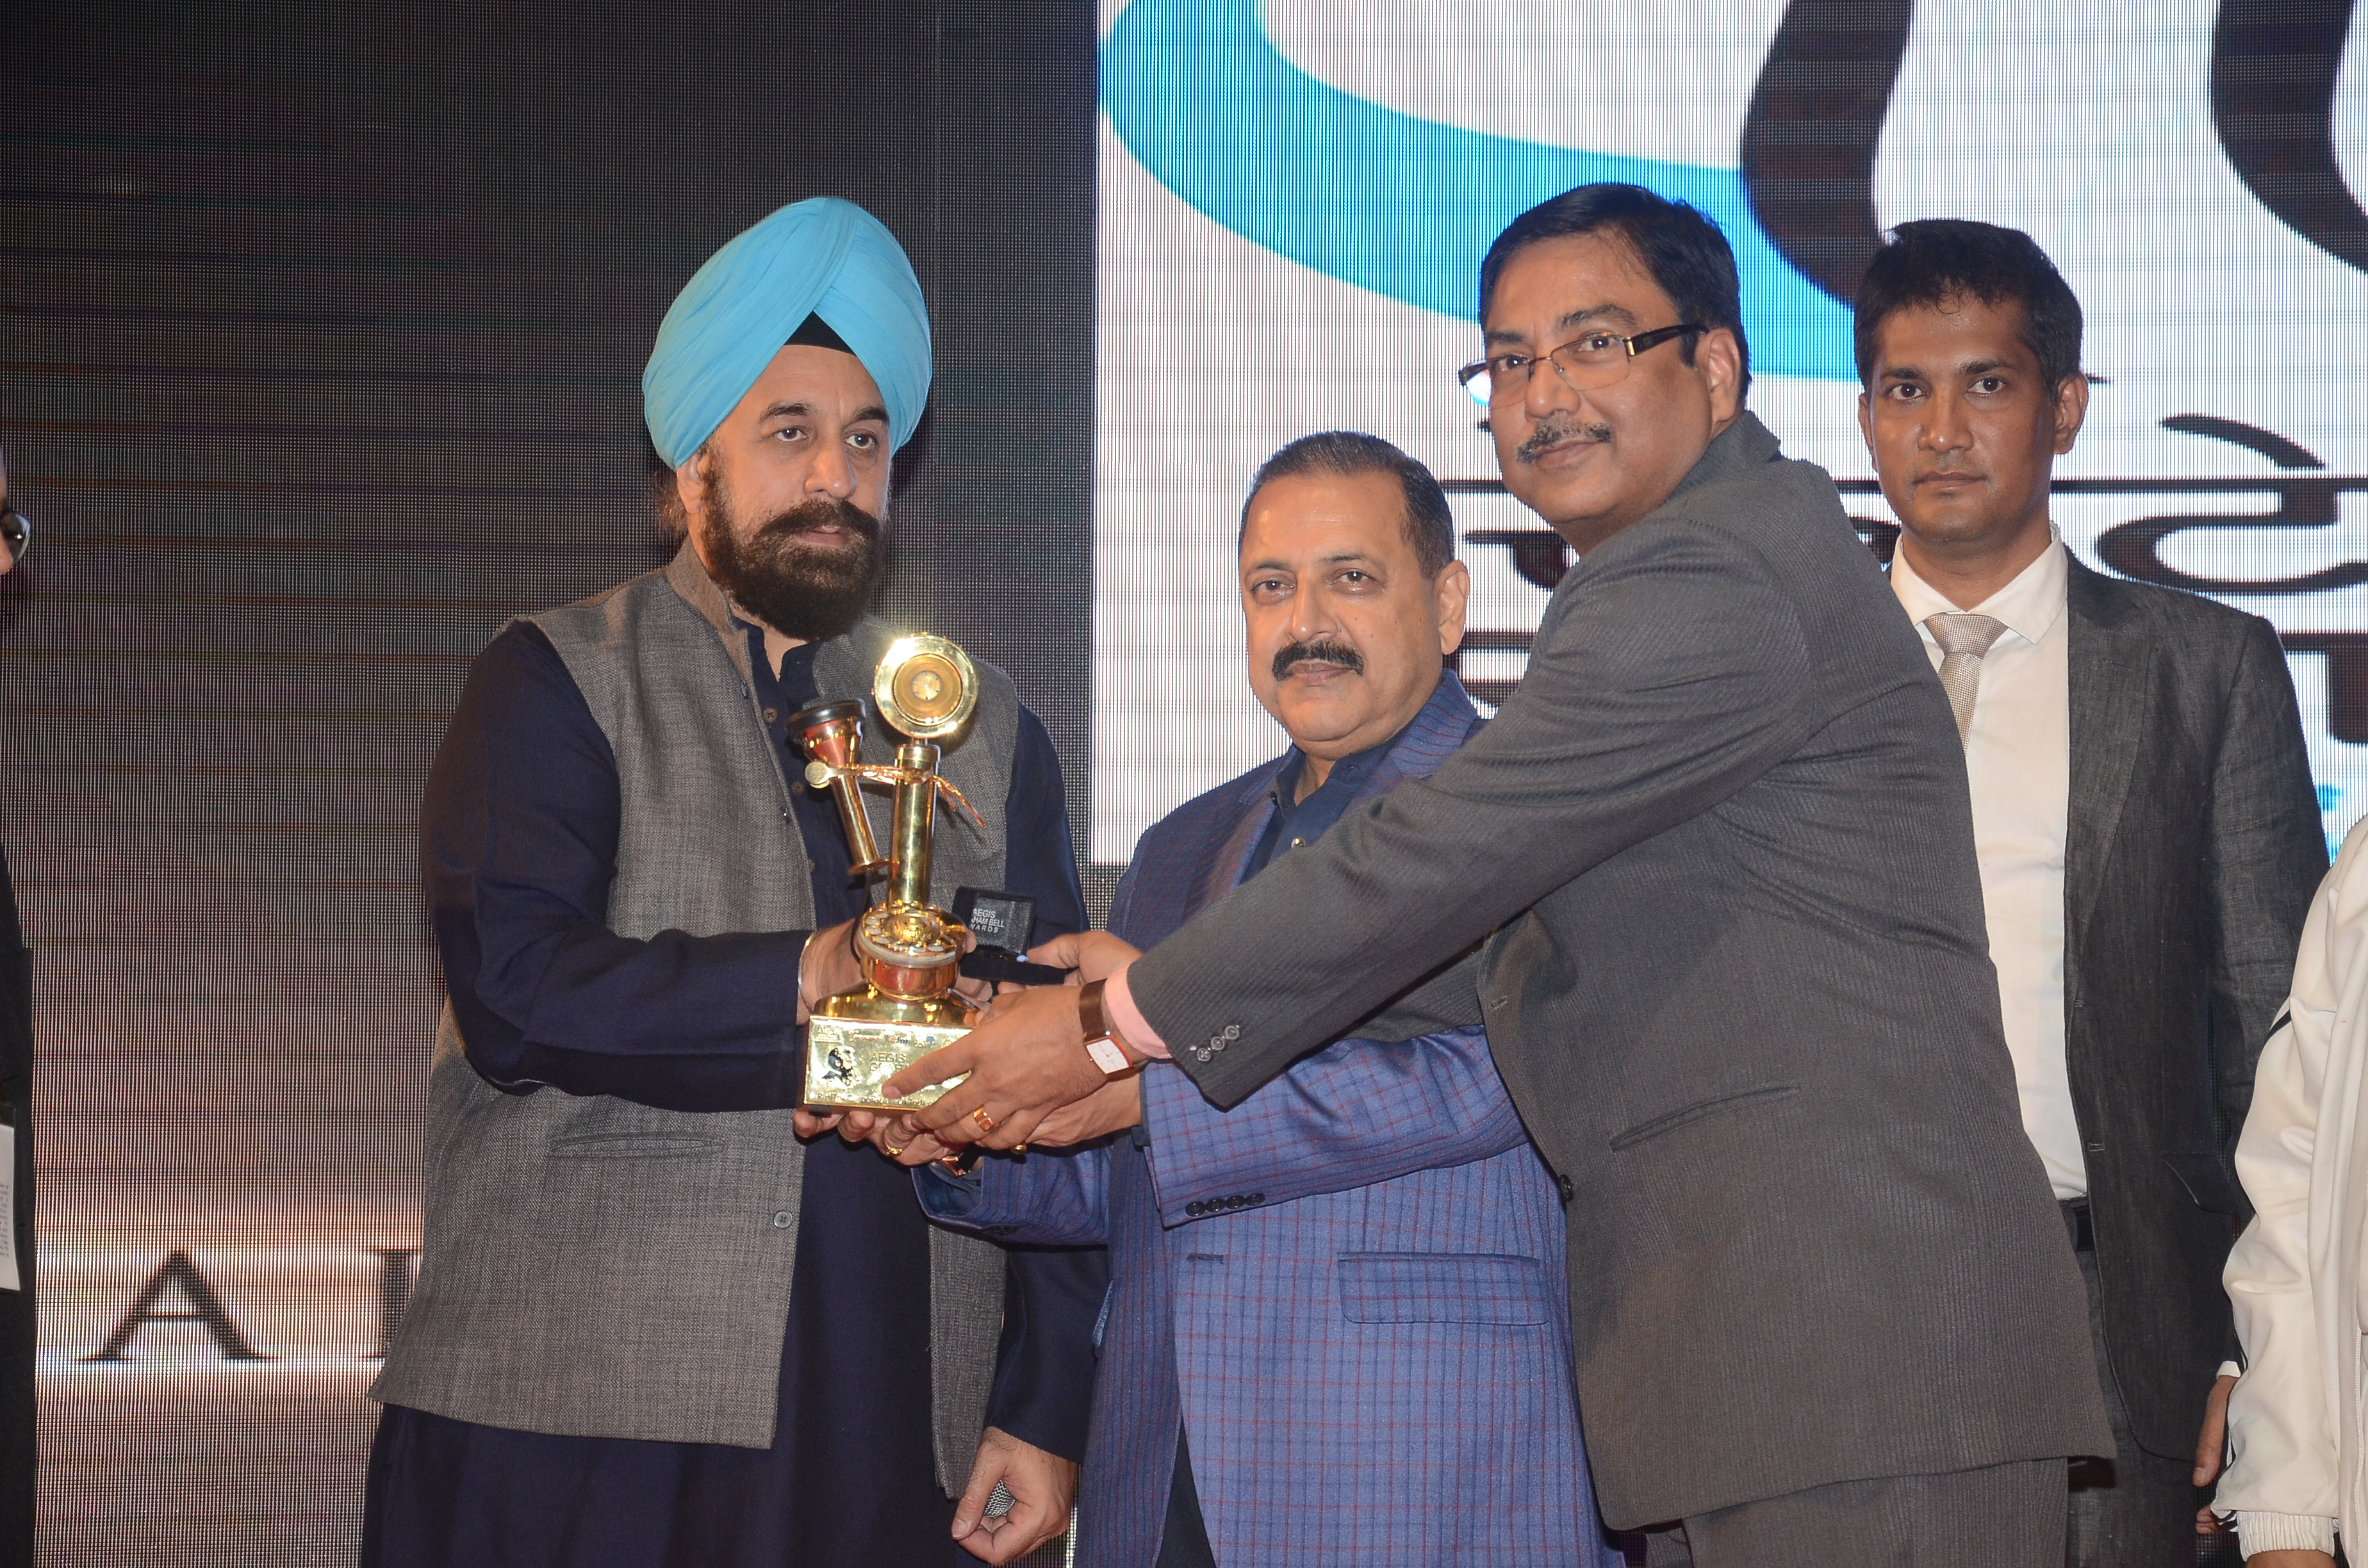 RailTel Corporation of India - Digital India winner 2015